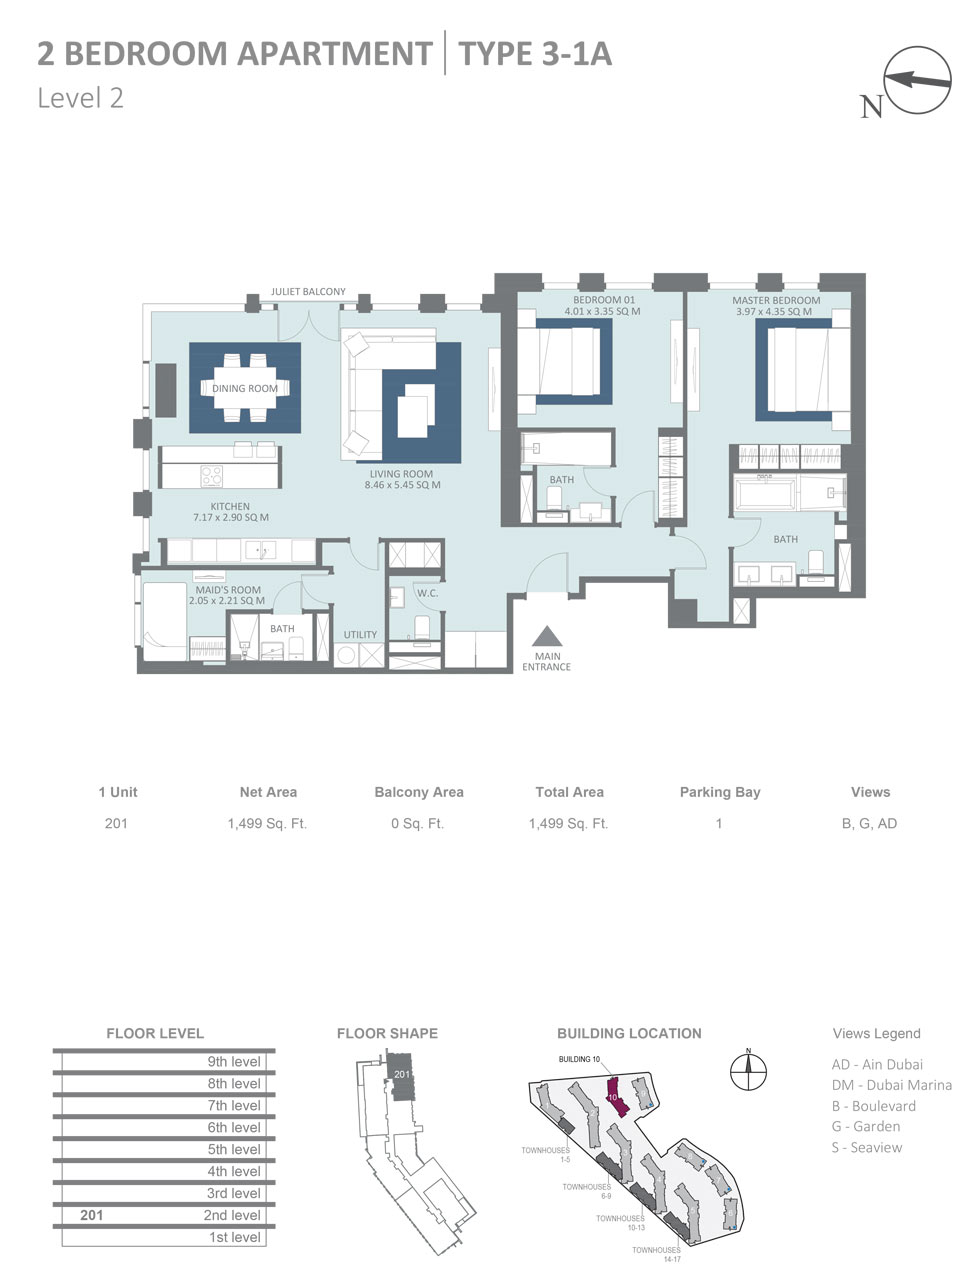 Building 10 - 2 Bedroom Apartment Type 3, 1A, Level 2, Size 1499  sq. ft.